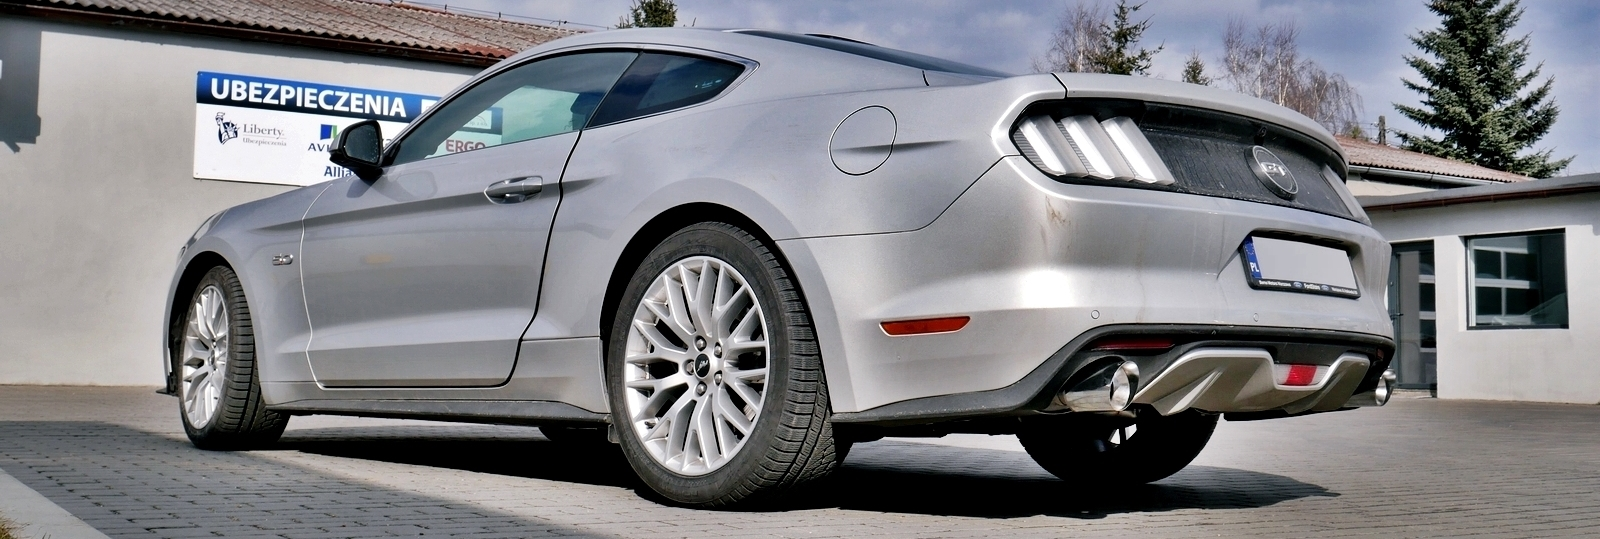 Ford Mustang Gt 5.0 V8 Remus Remus